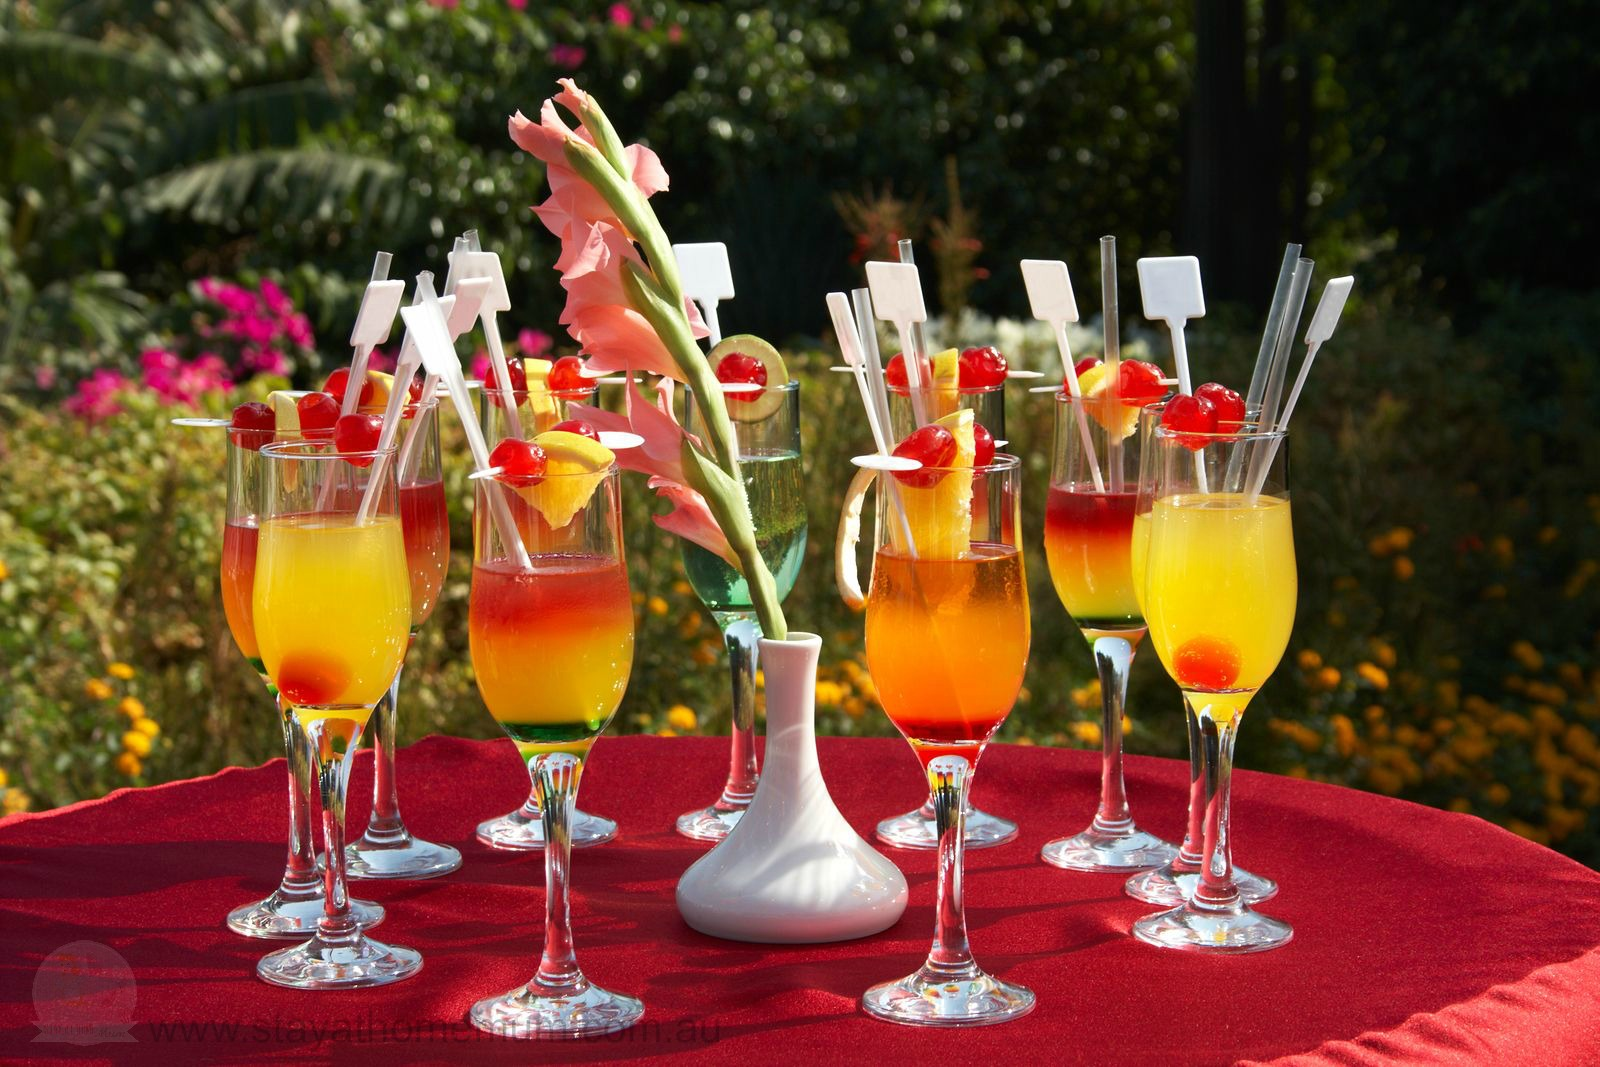 Complete cocktail party planning ideas bookeventz - Best Cocktail Party Venues In Dadar With Amazing Drinks And Snacks